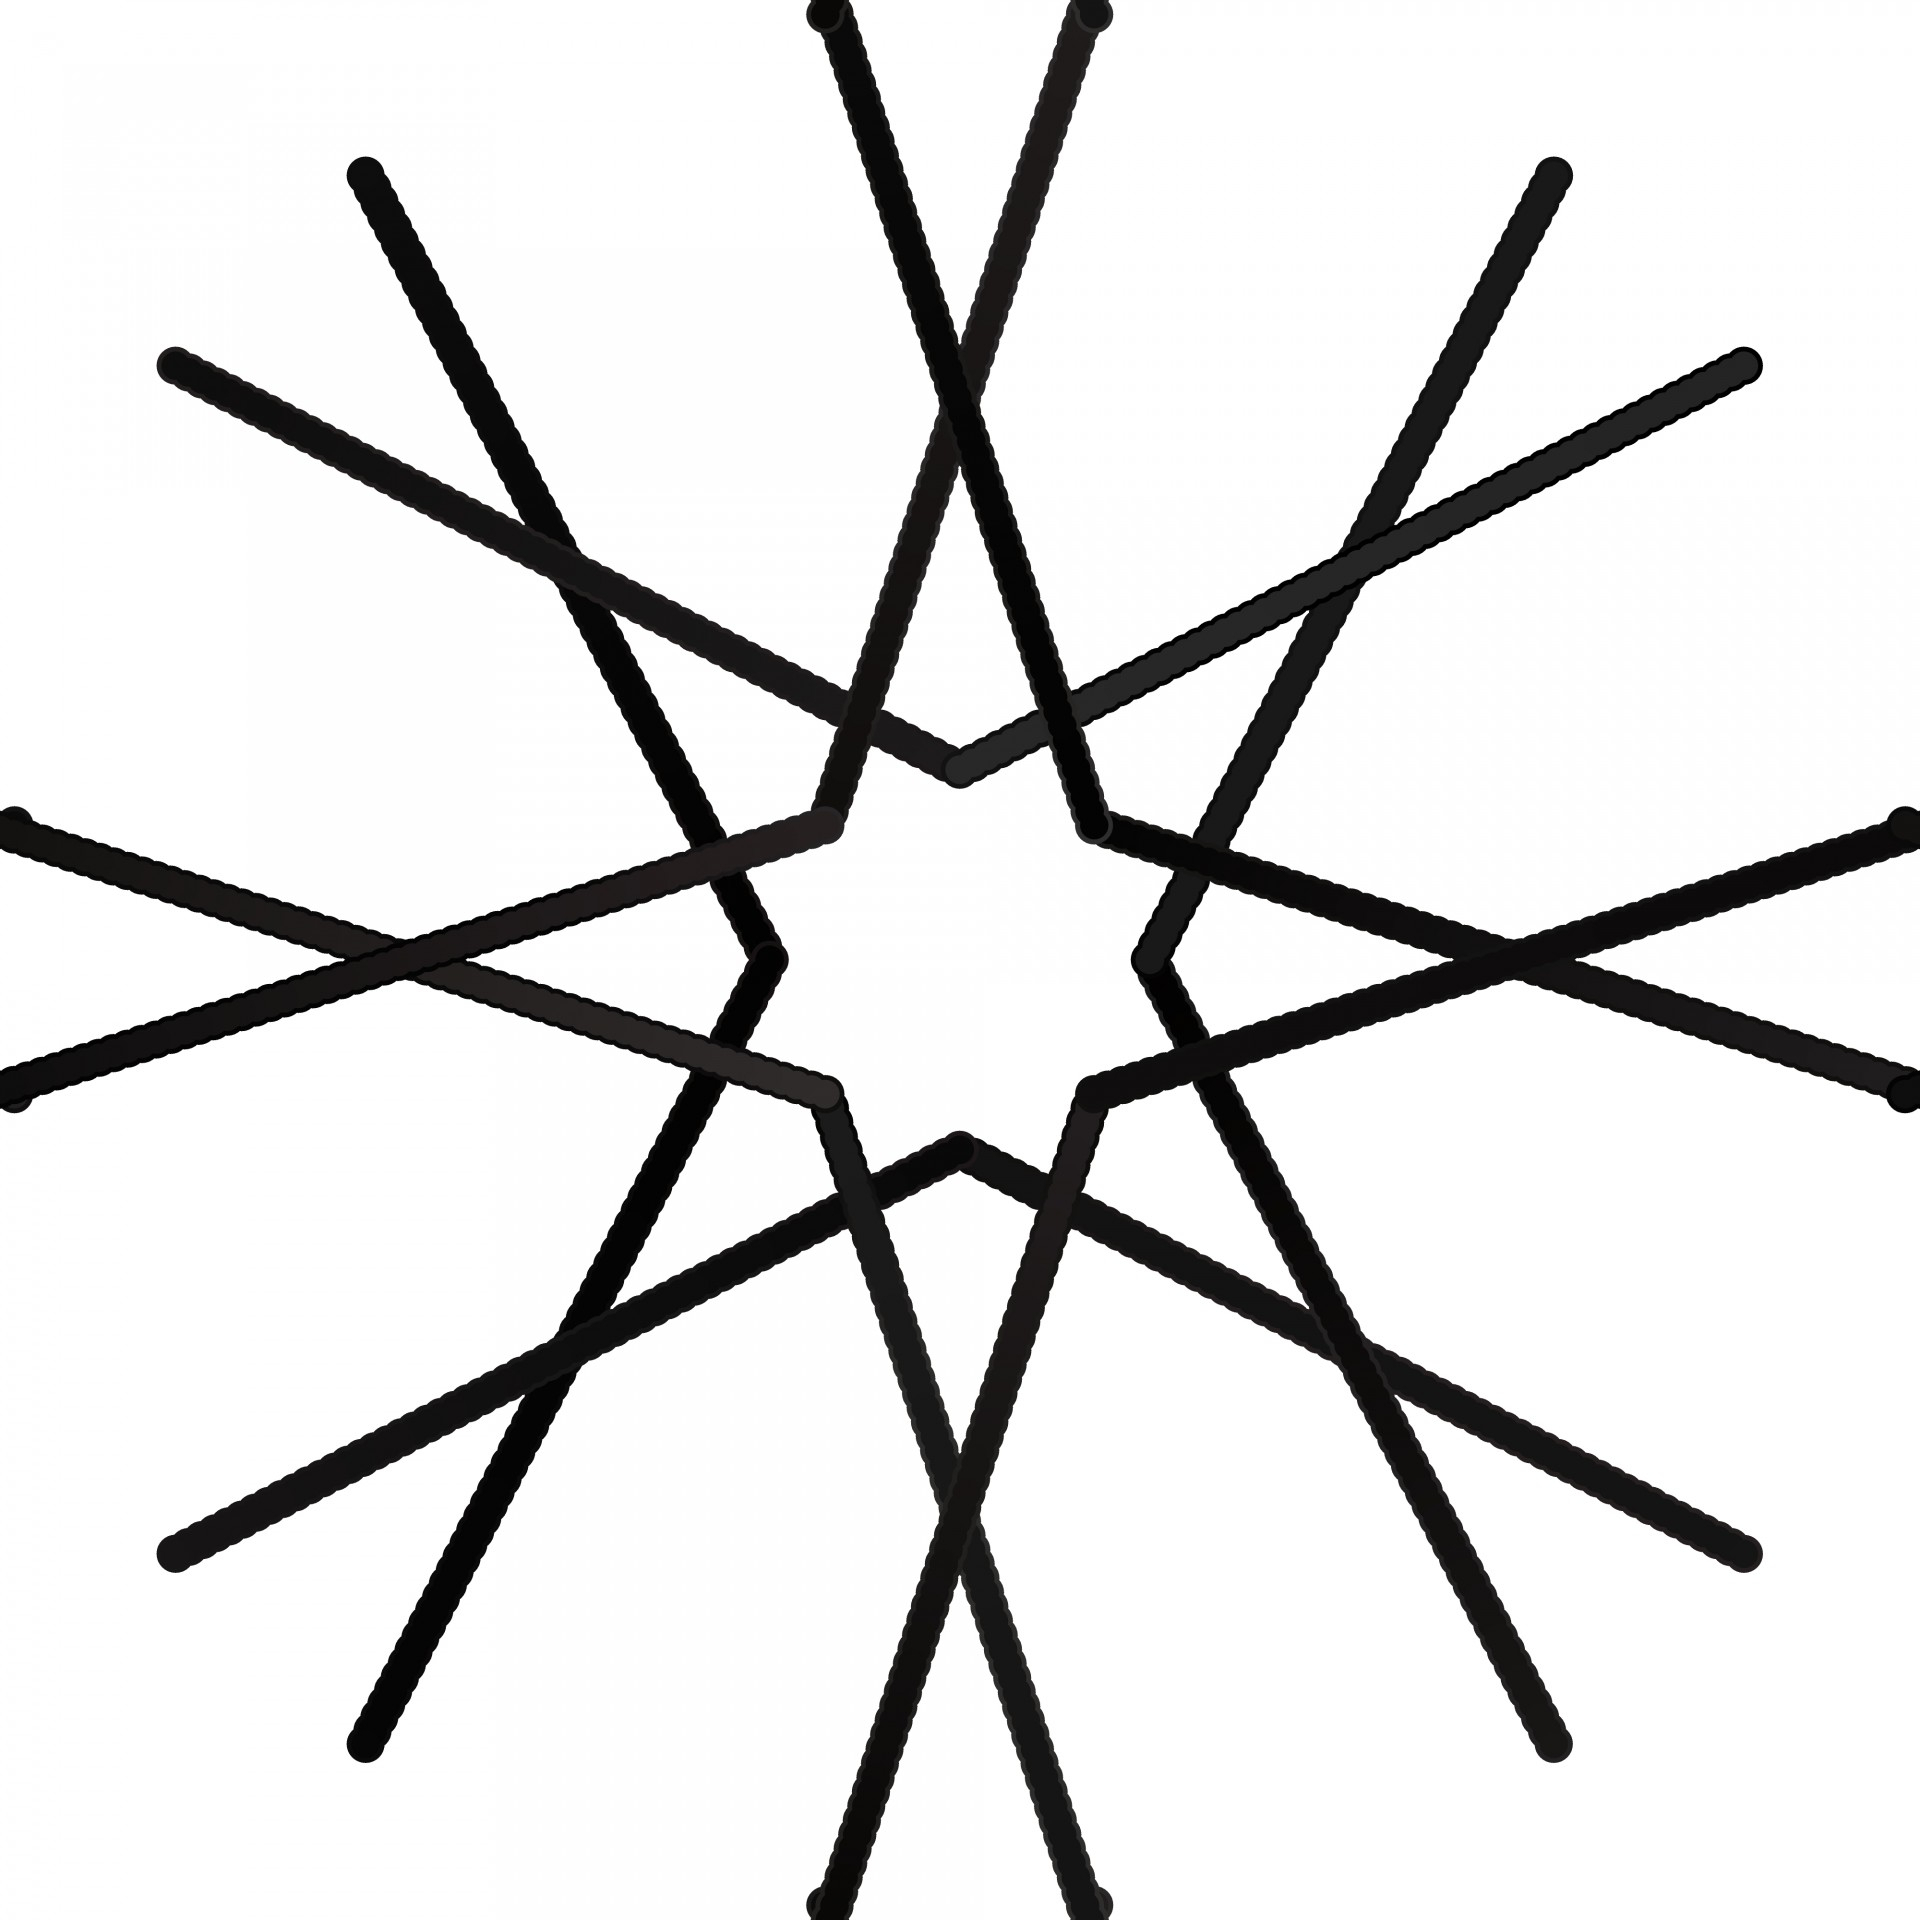 1920x1920 Simple Drawing Of A Snowflake Simple Snowflake Free Stock Photo